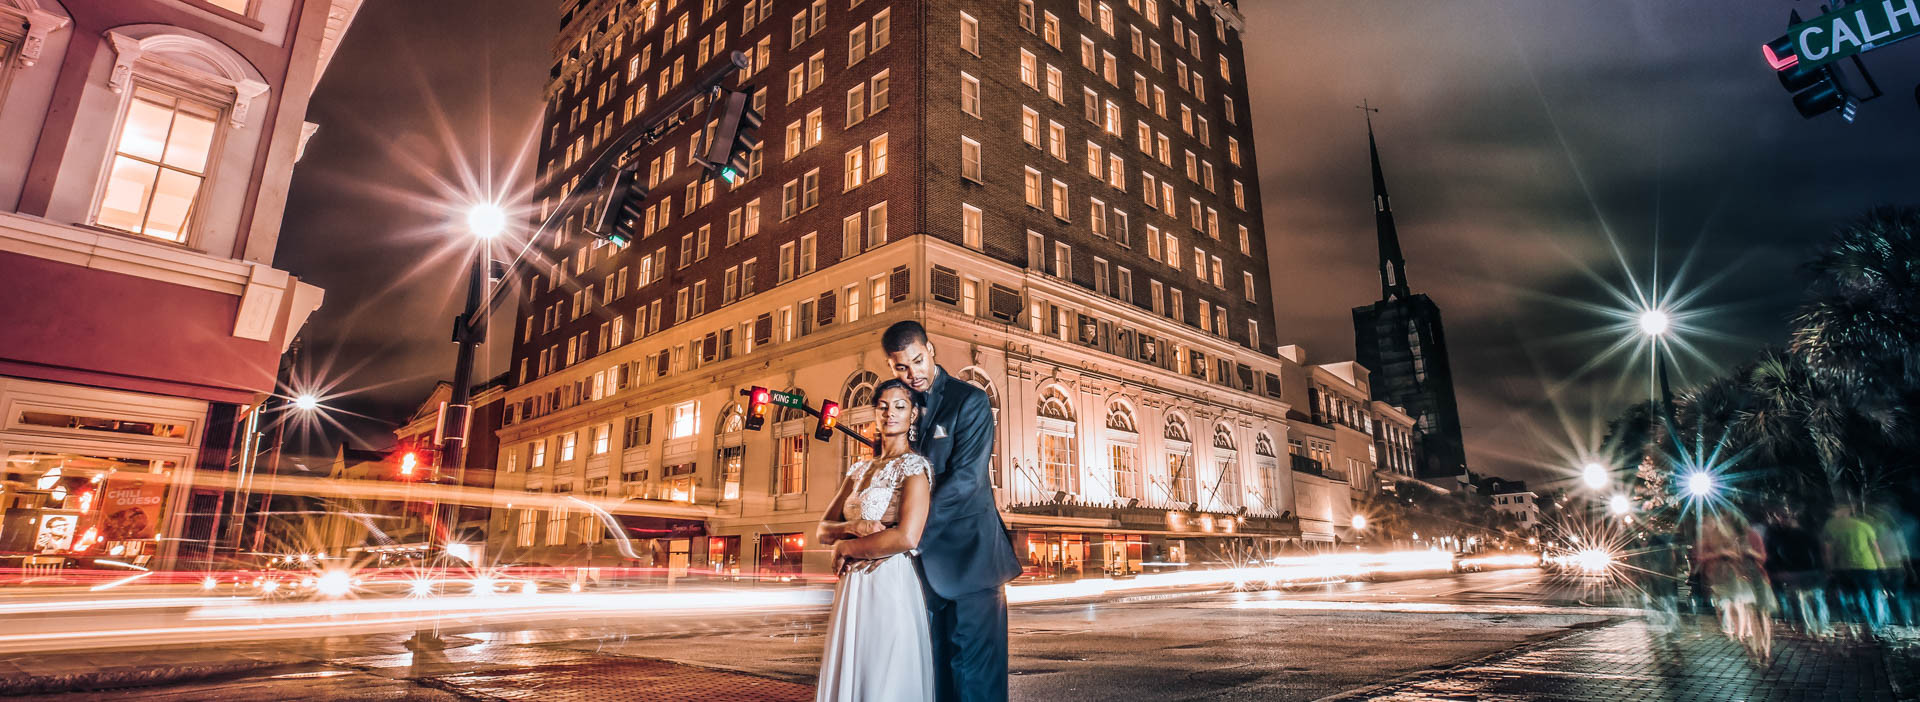 Francis Marion Hotel Wedding Photography